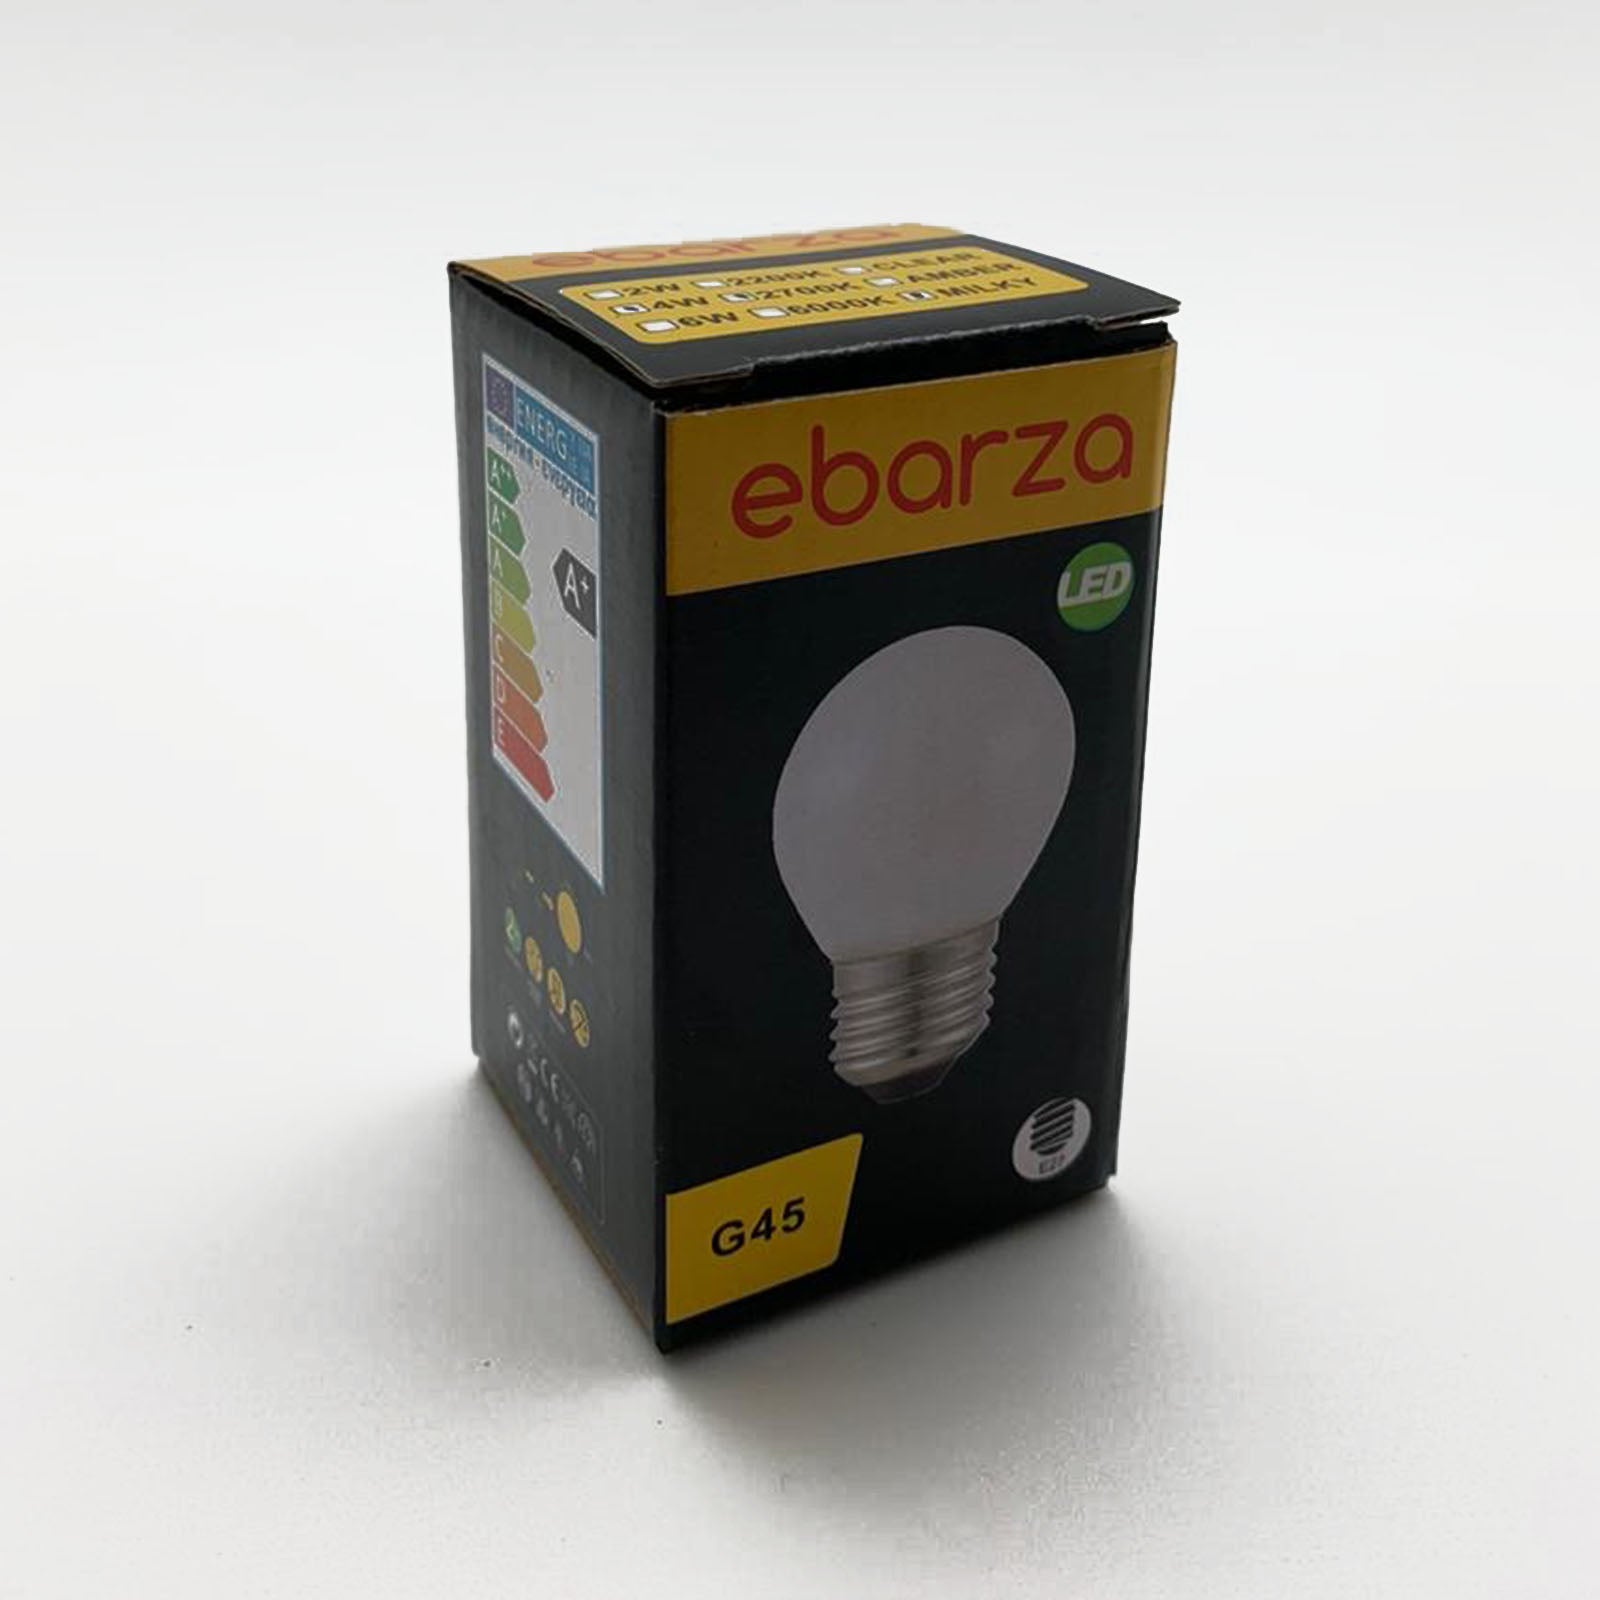 Set of 6 LED E27 Vintage bulbs G45 IVORY